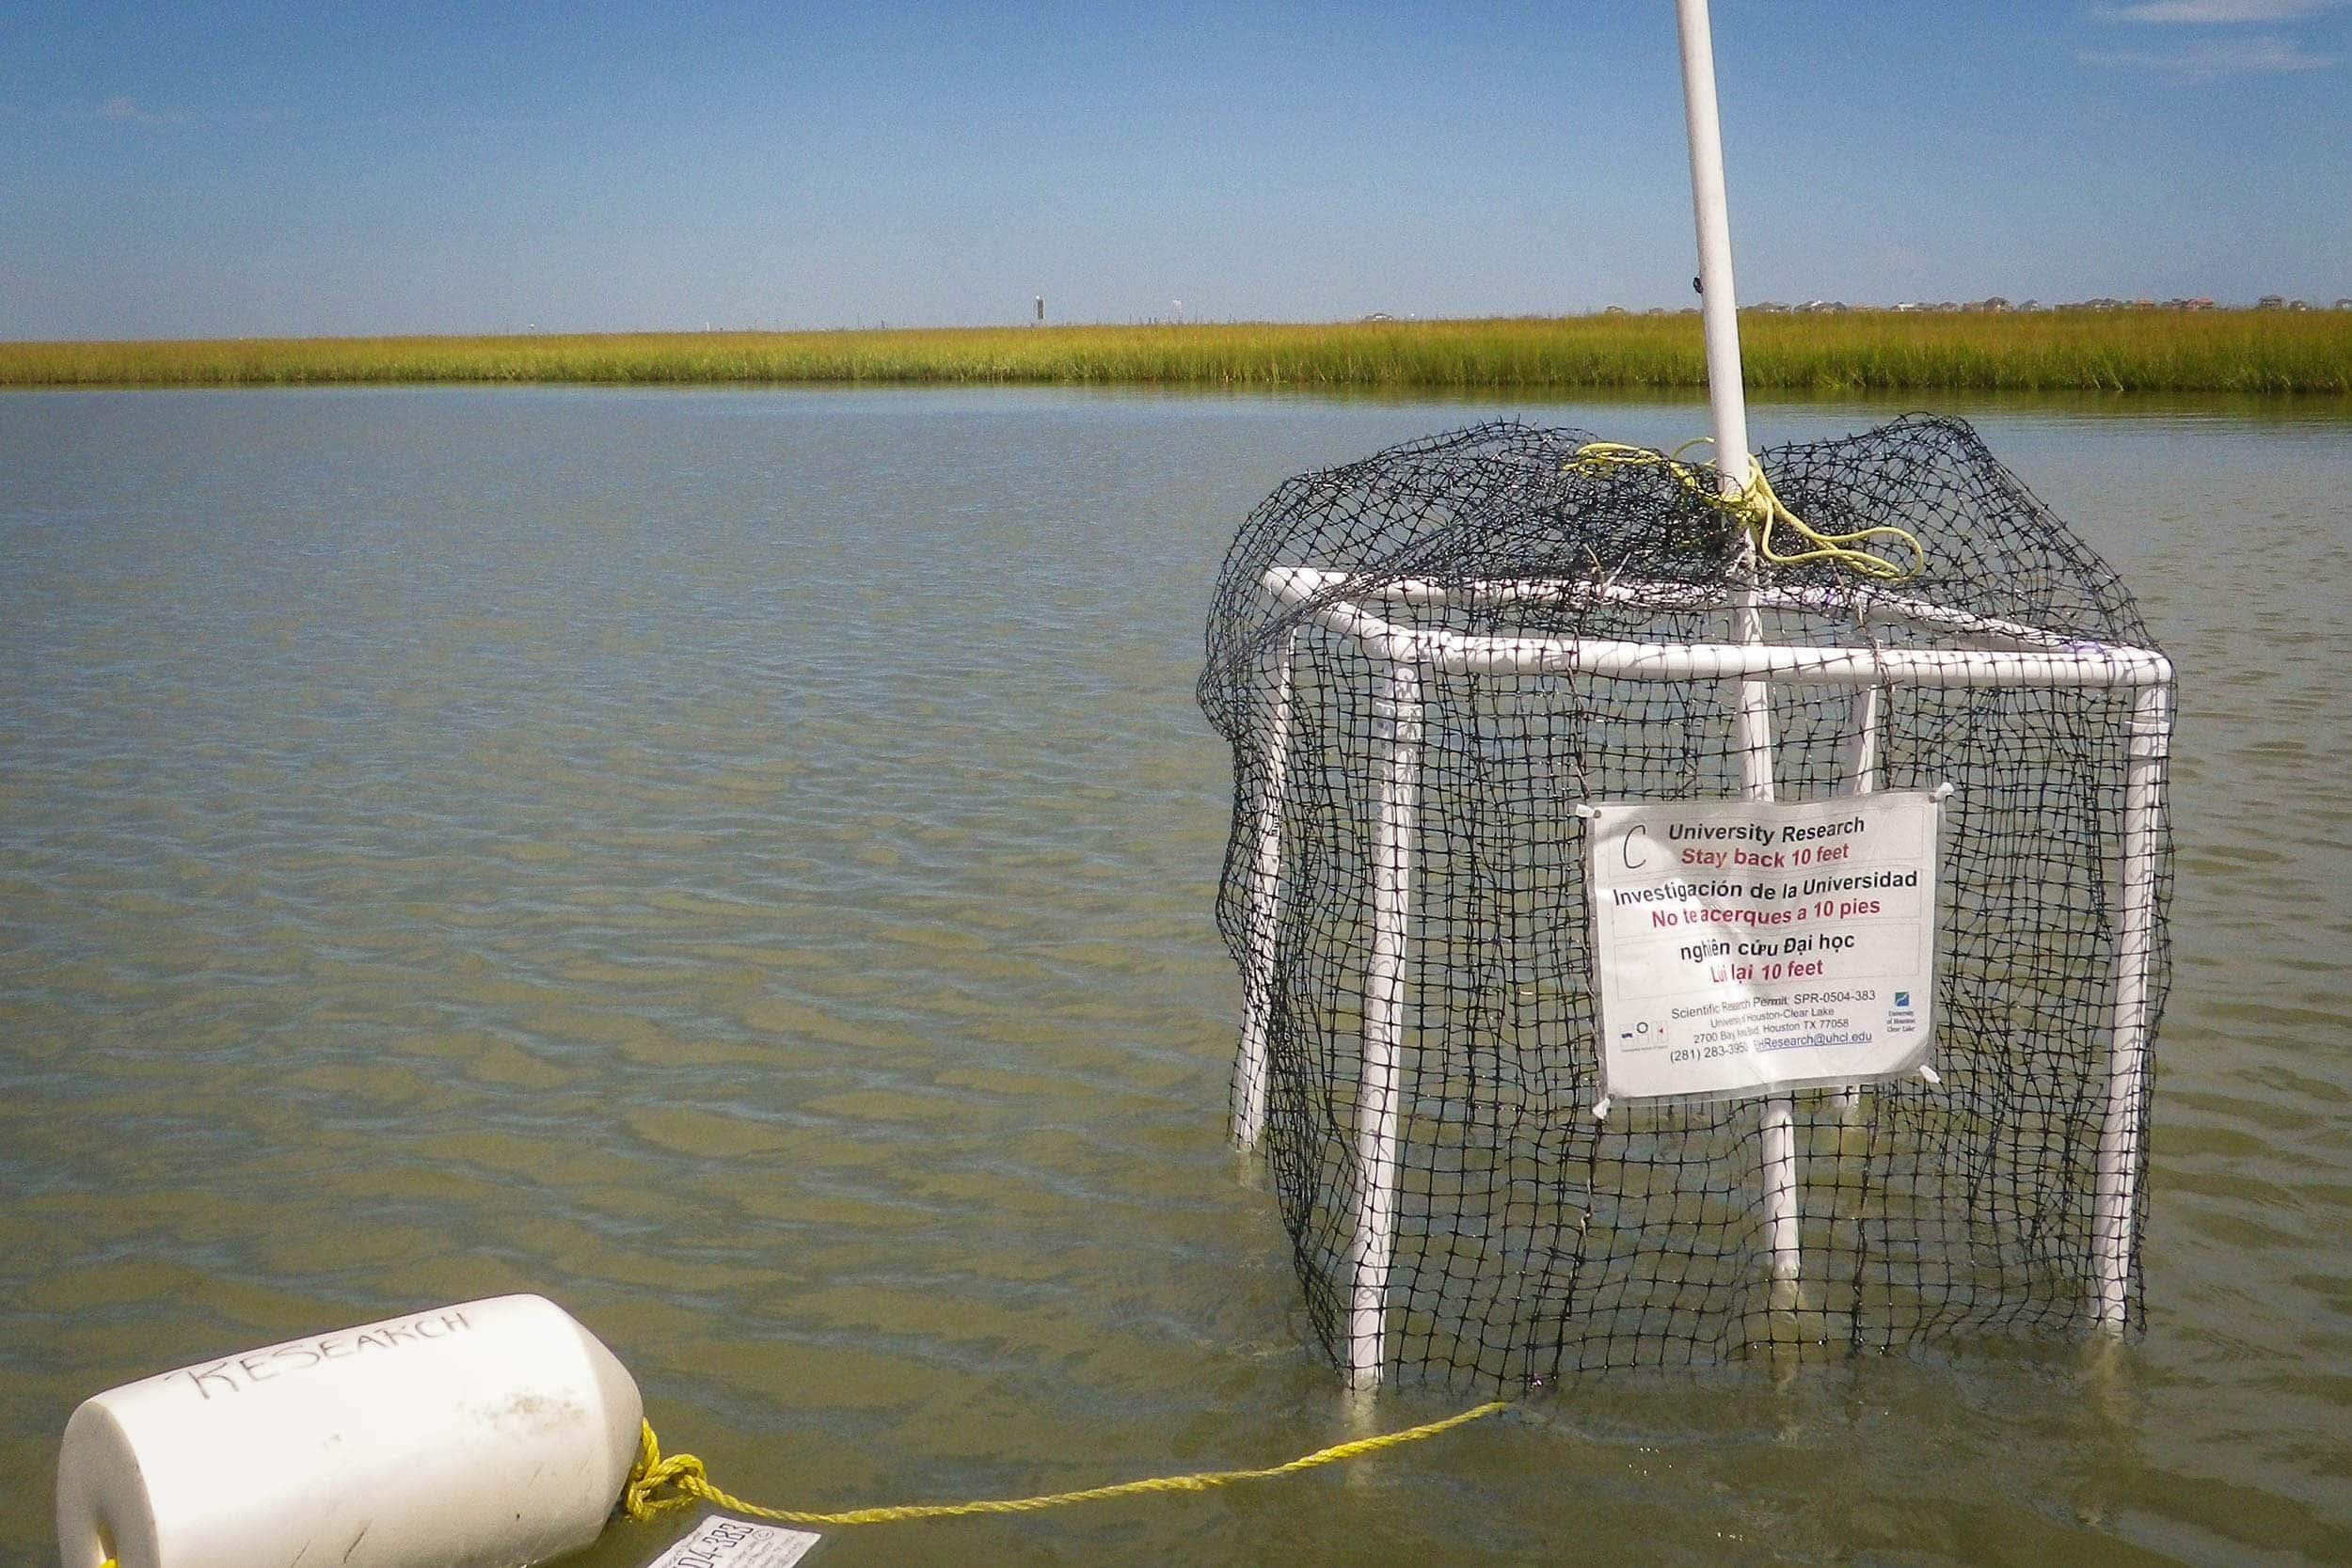 Modified crab trap deployed in open water